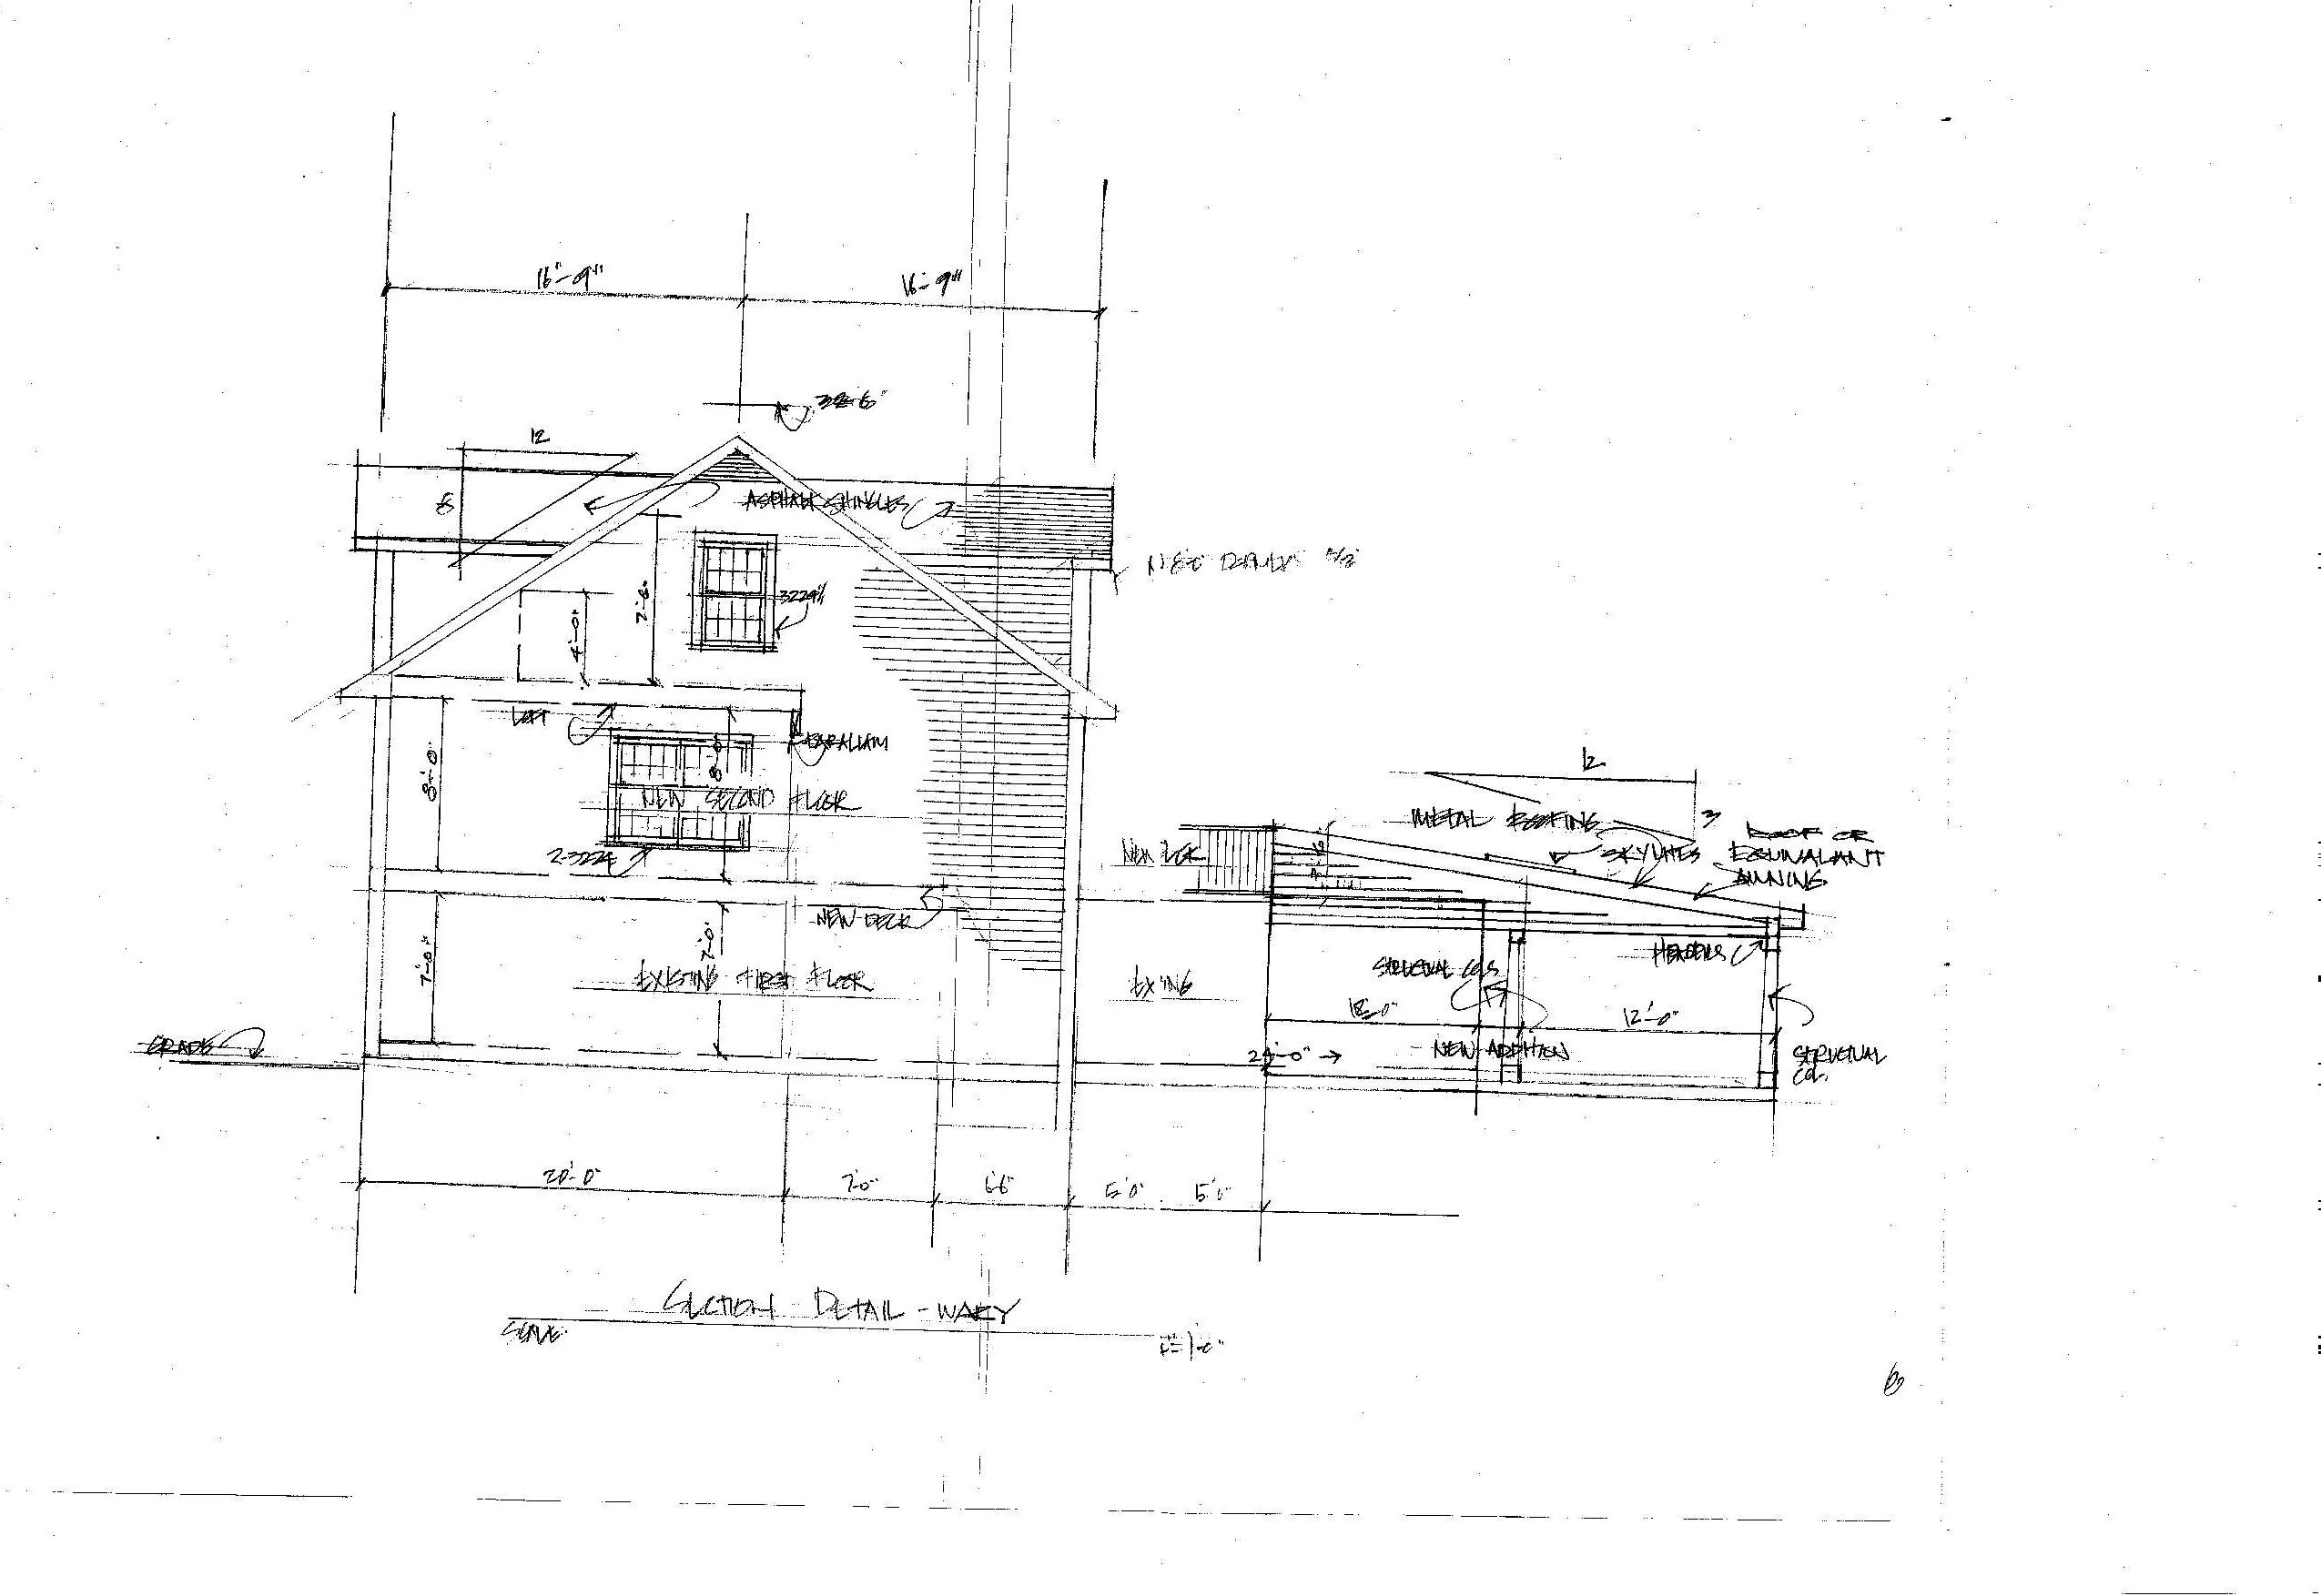 Elevation Plan View Drawing : Elevation plan view drawing